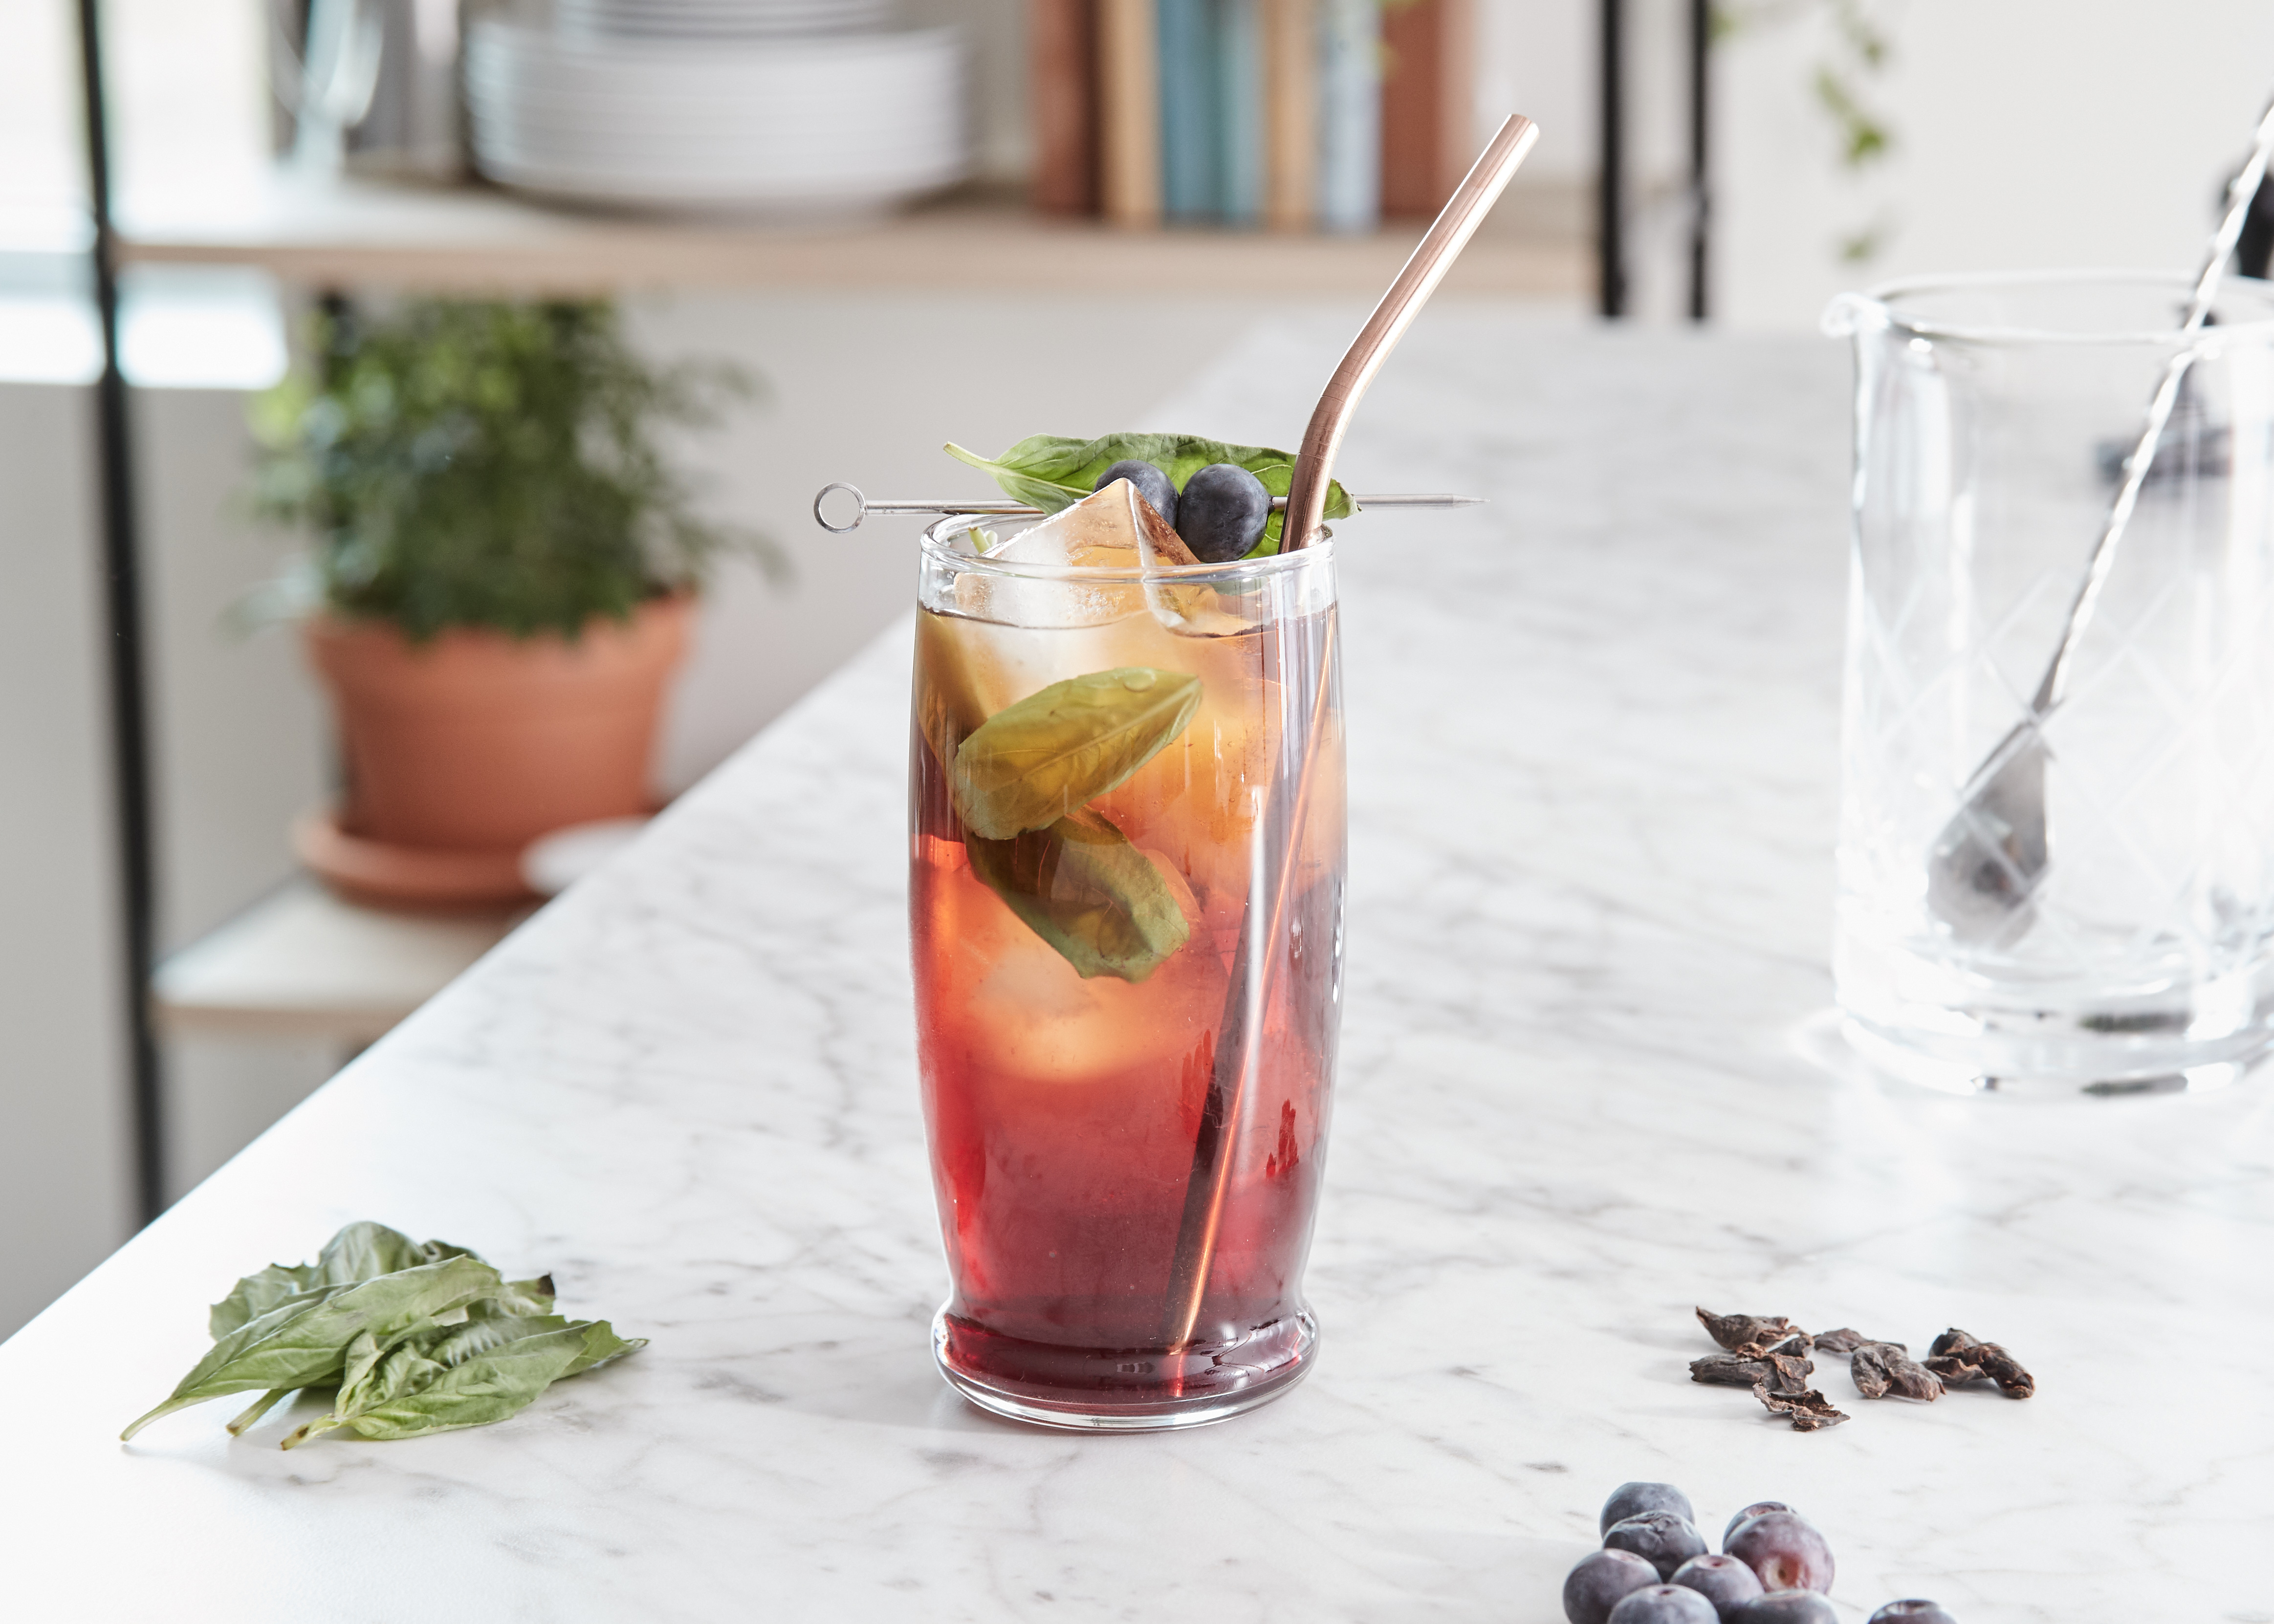 Blueberry + Basil Cascara Sweet Tea served with a straw and ingredients on the table